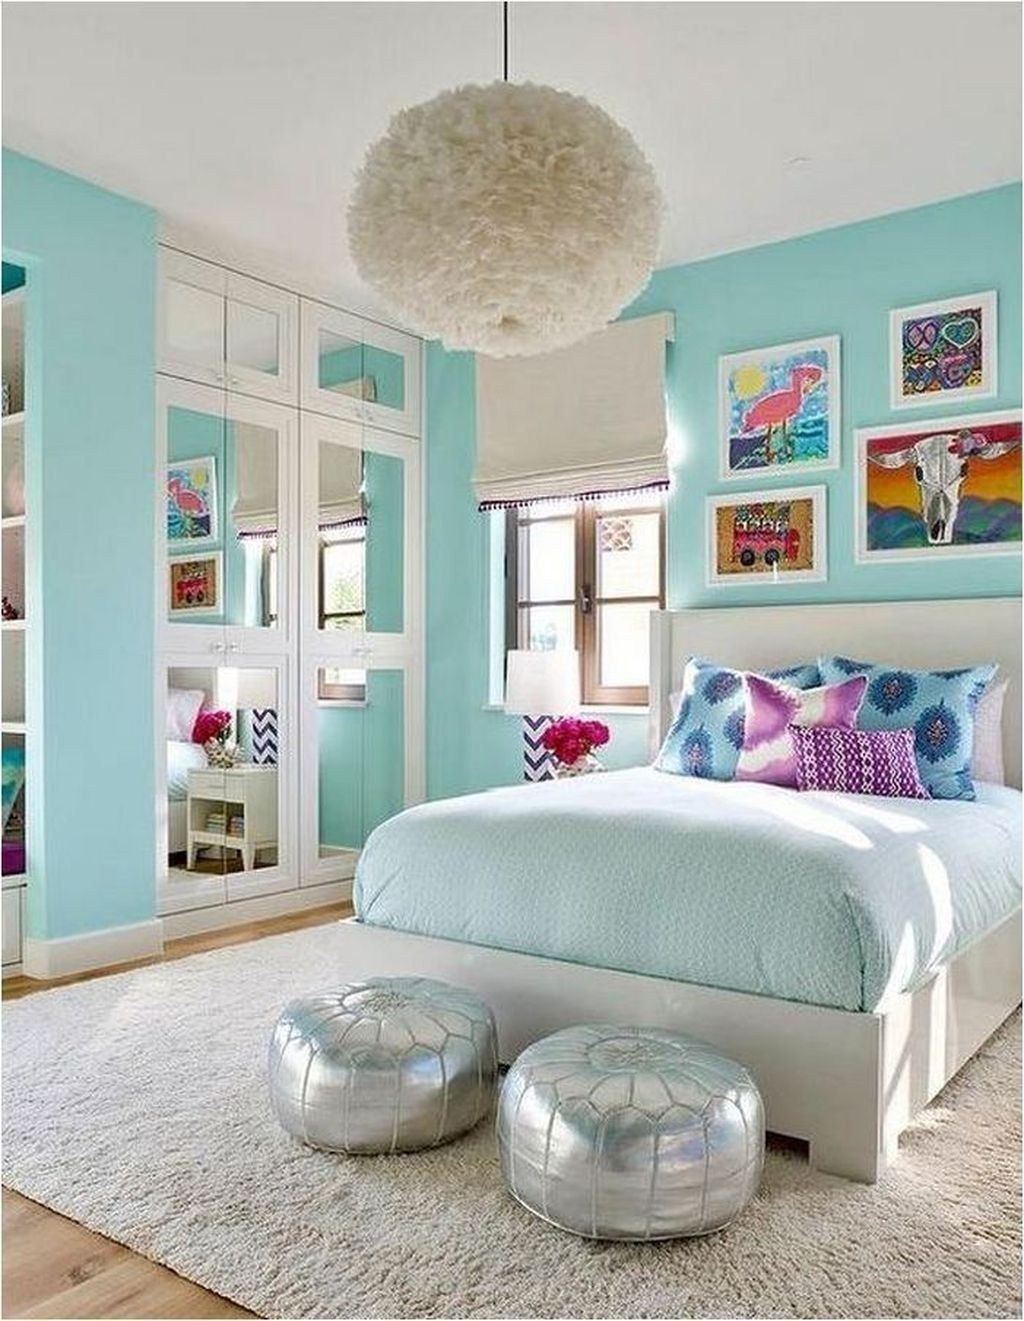 46 Lovely Girls Bedroom Ideas Tween Girl Bedroom Light Blue